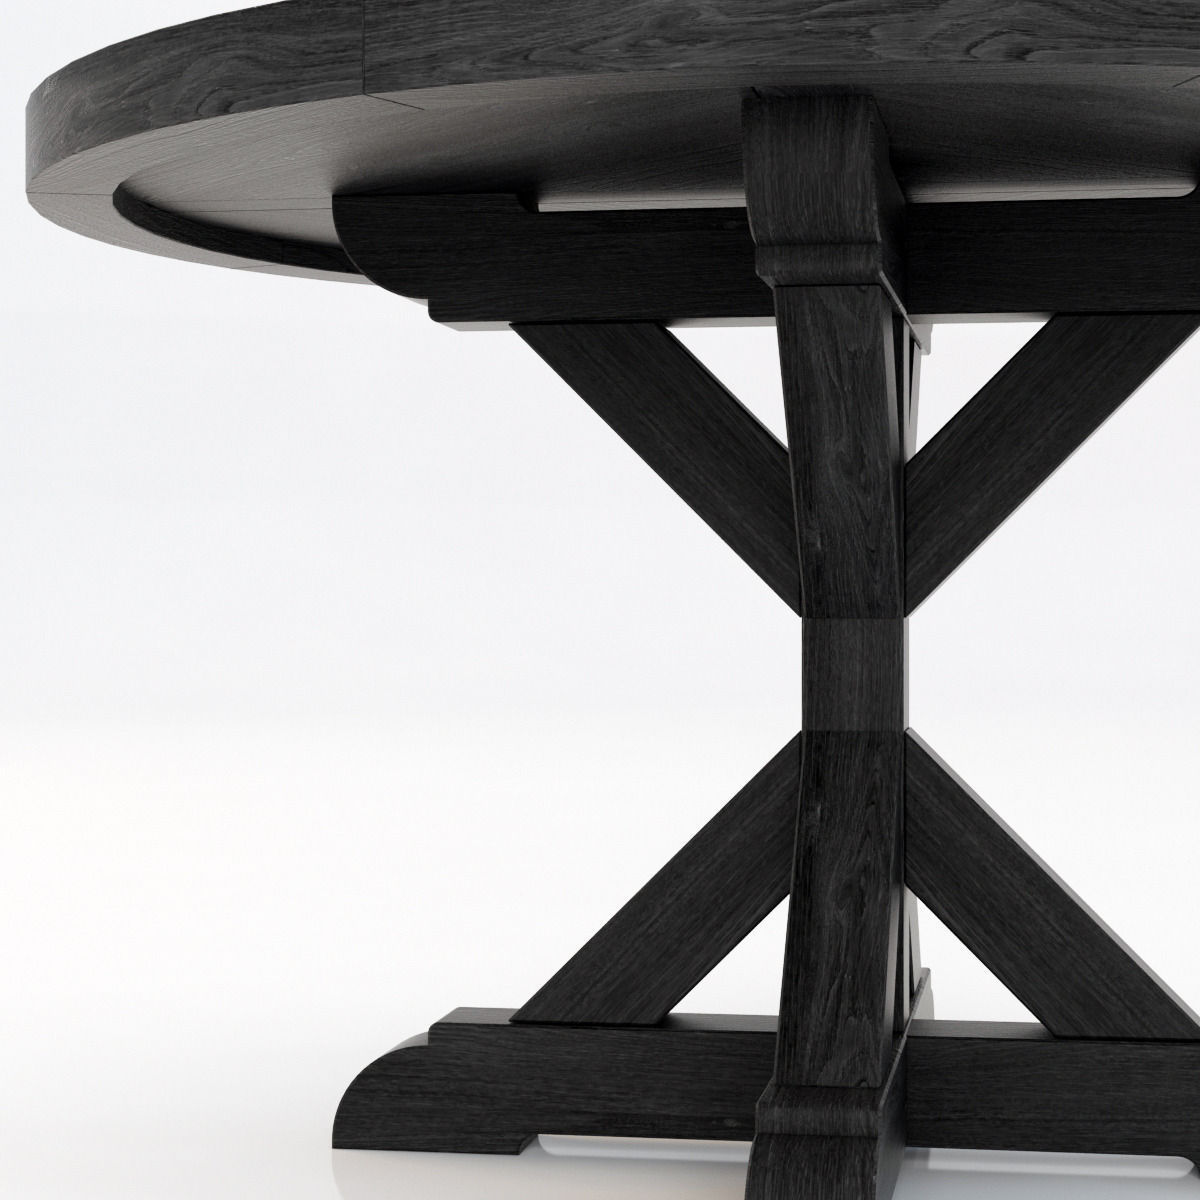 100 Restoration Hardware Dining Tables Oval Dining  : restoration hardware salvaged wood x base dining table 3d model max from lakemurrayhome.com size 1200 x 1200 jpeg 115kB